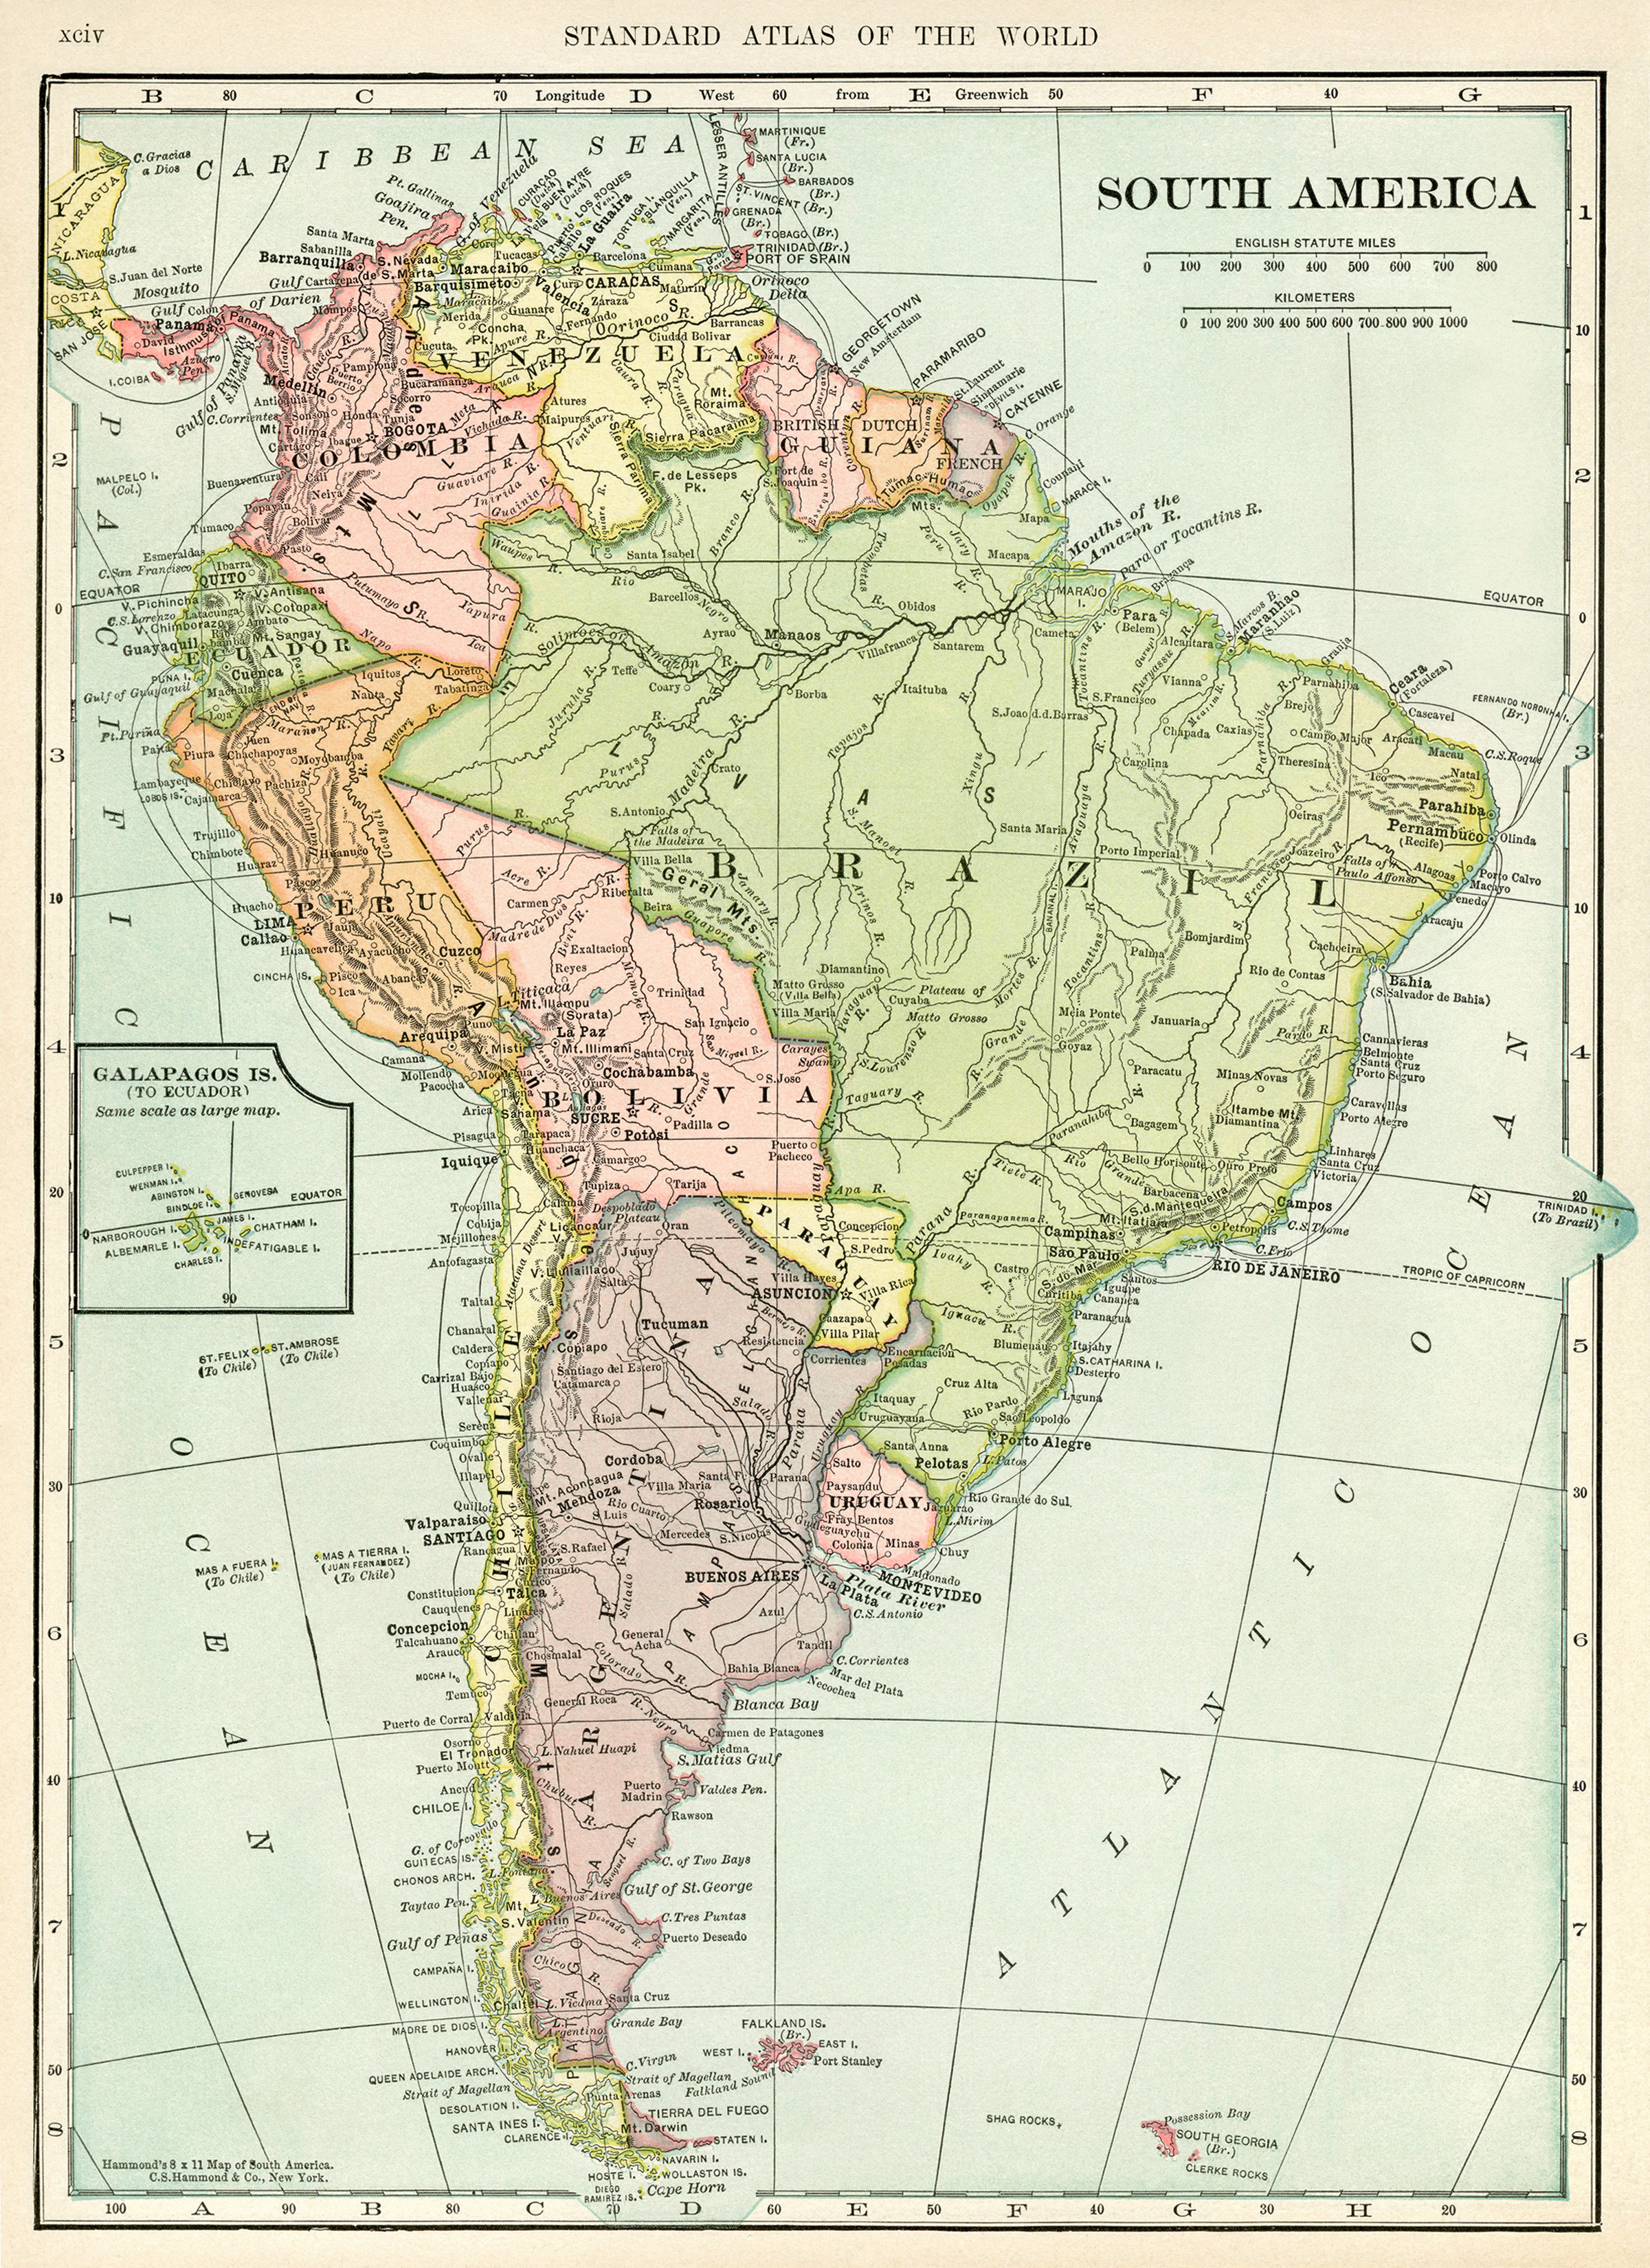 Free vintage map of South America